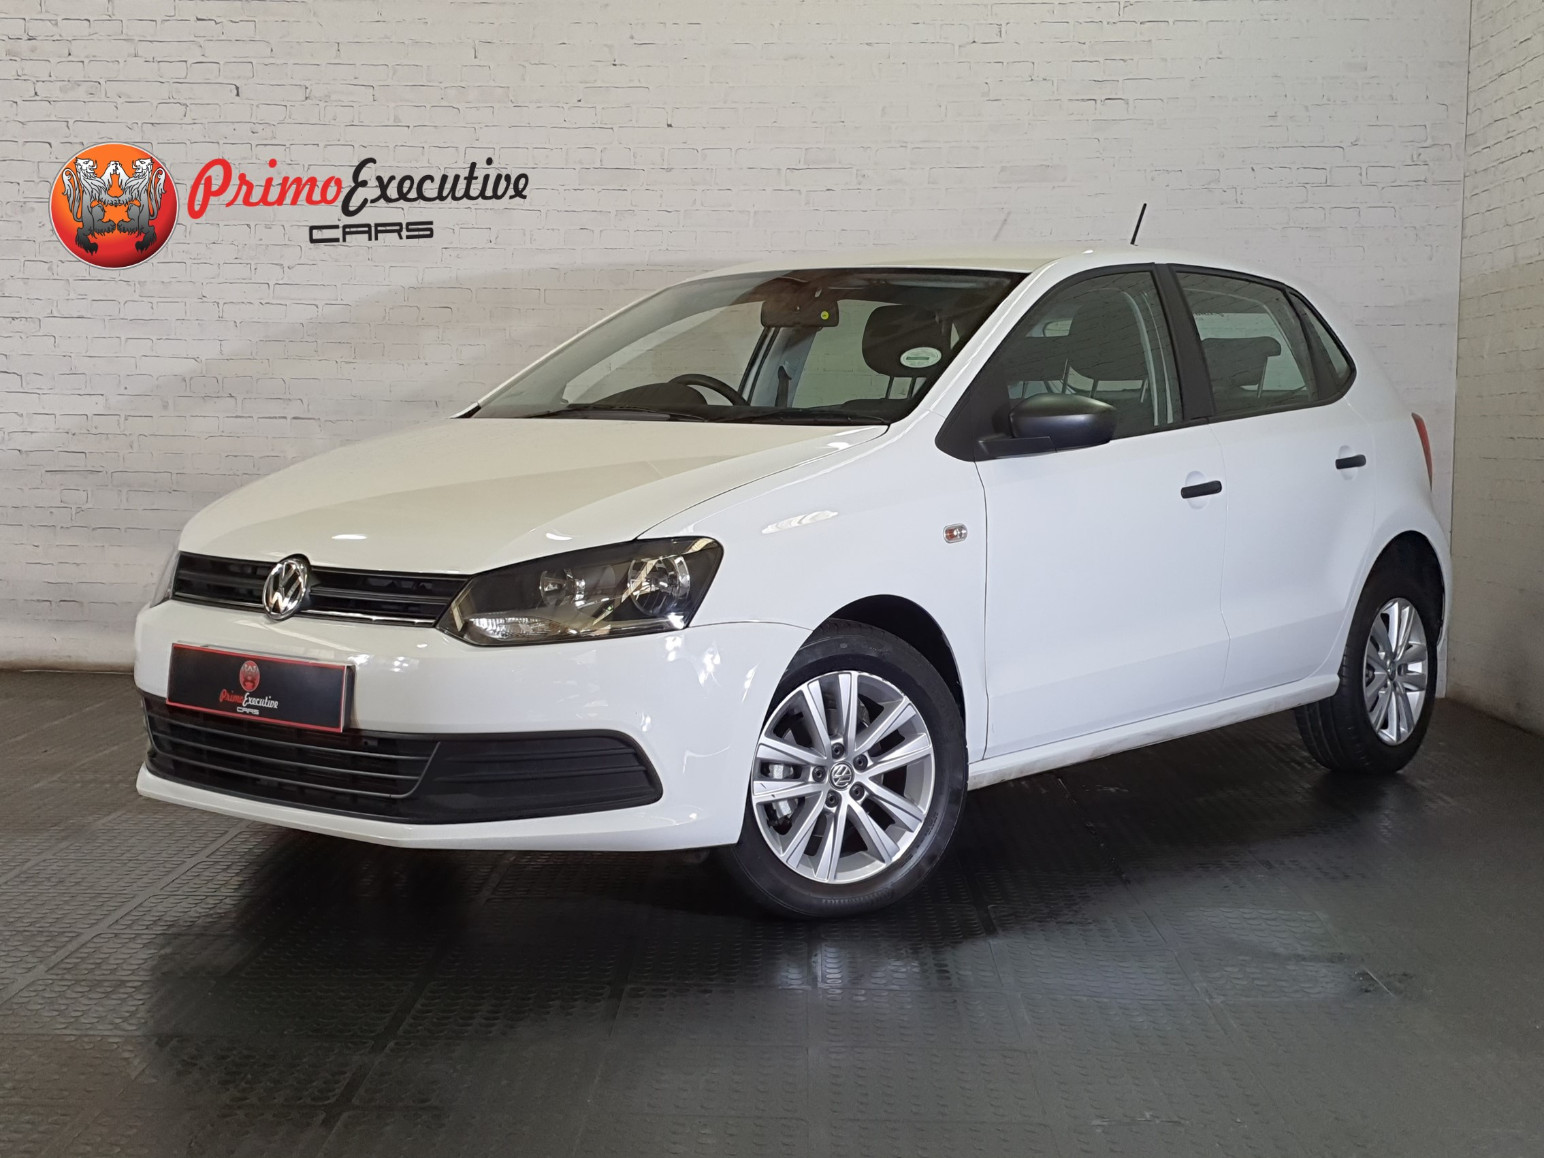 Volkswagen Polo Vivo hatch 1.4 Trendline